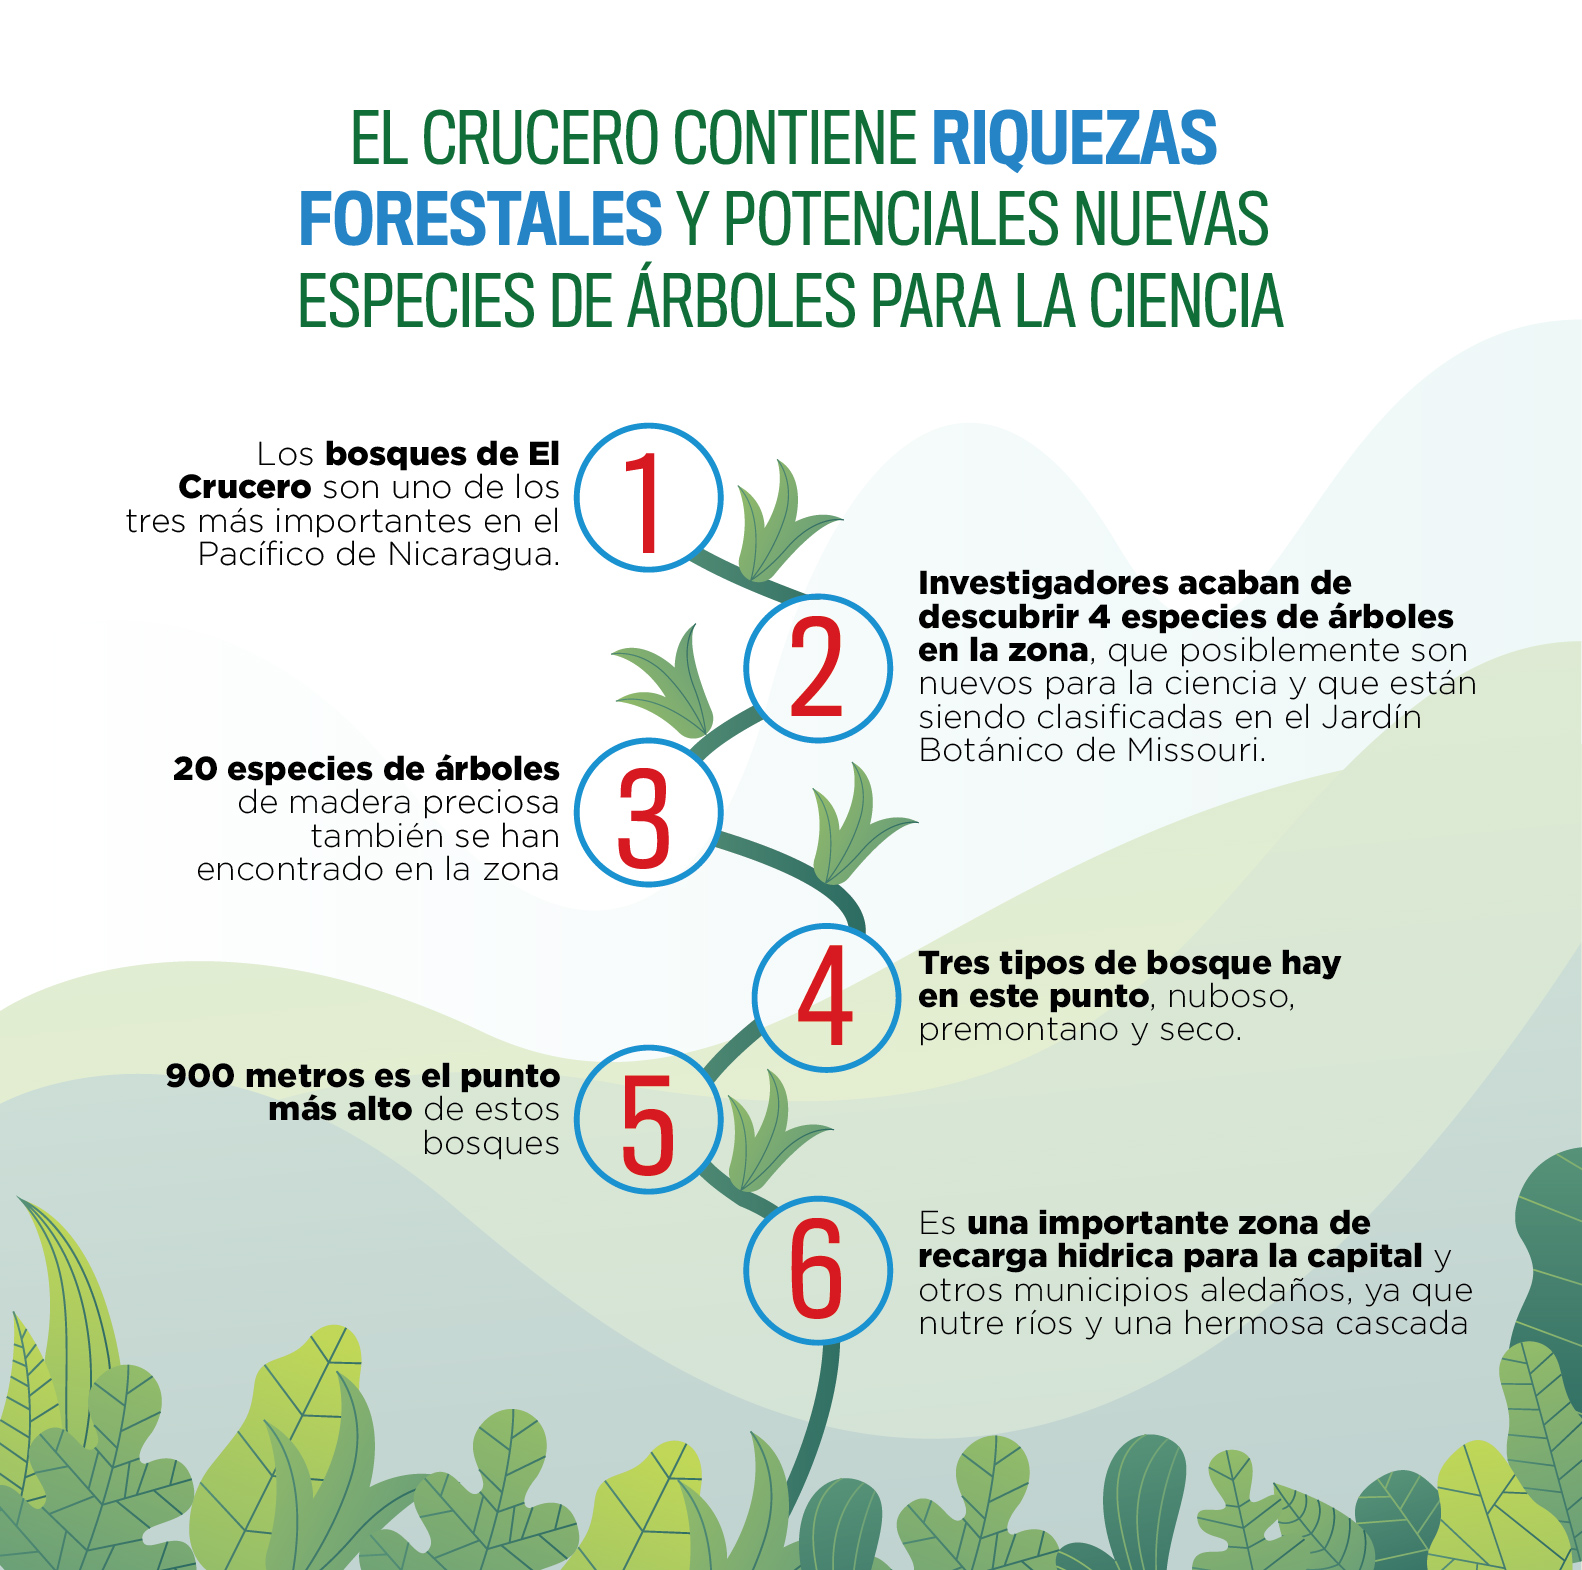 https://imgs.mongabay.com/wp-content/uploads/sites/25/2019/10/19012142/Infografia.jpg